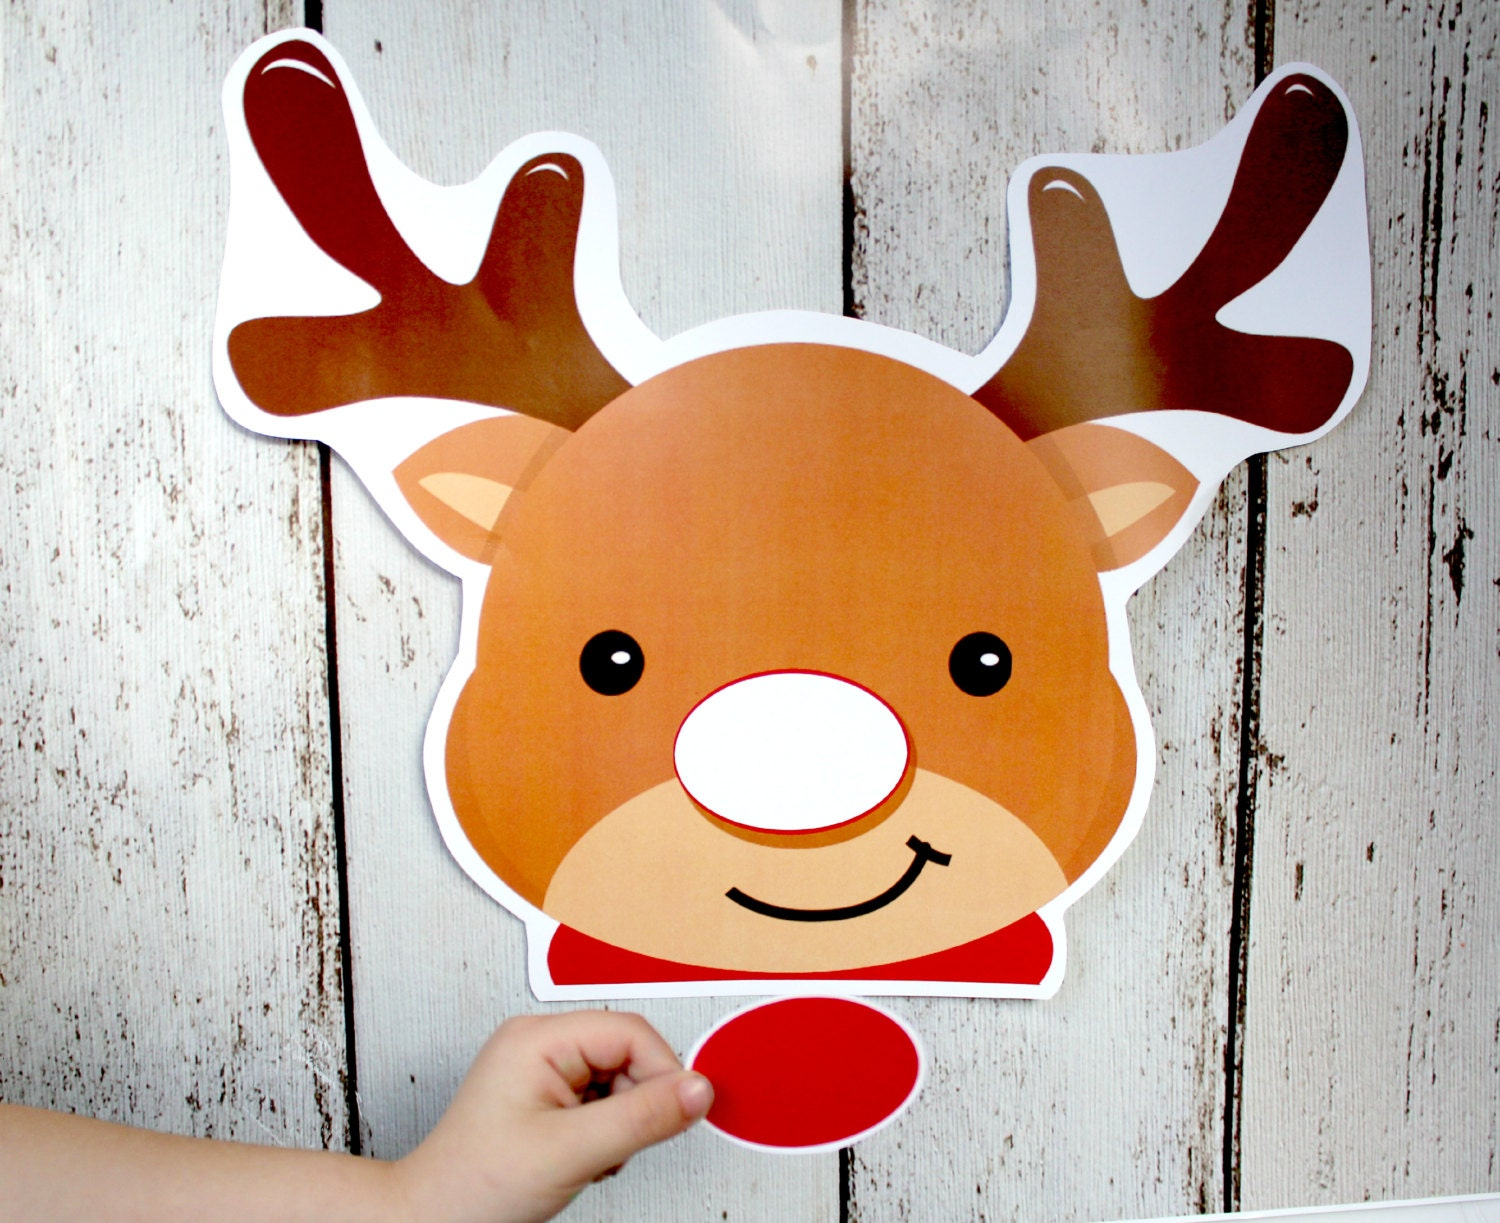 Witty image intended for pin the nose on rudolph printable